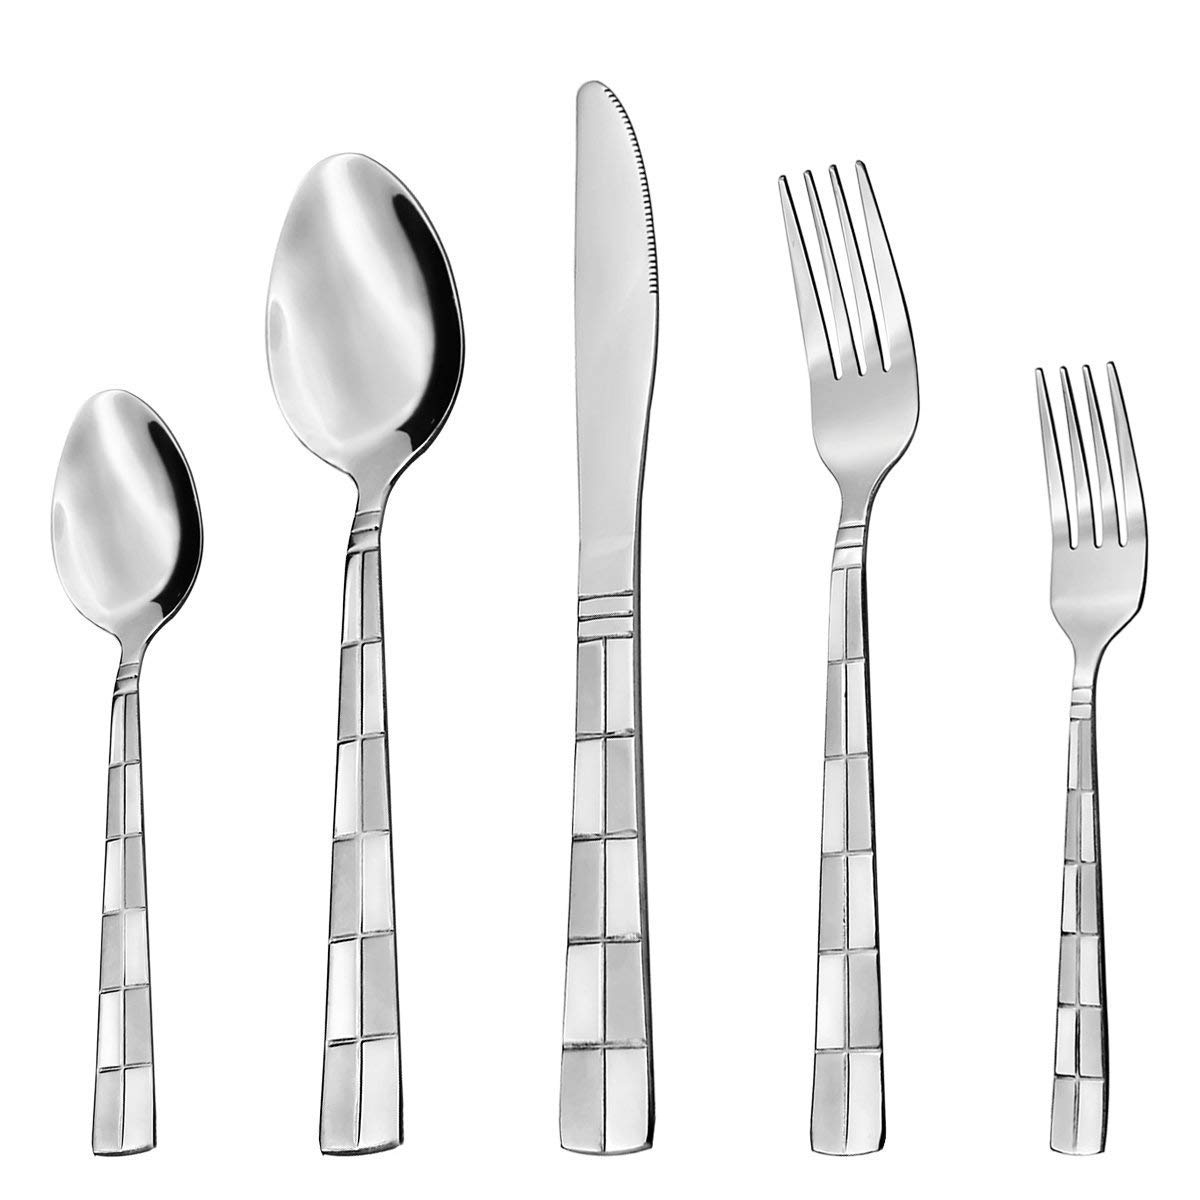 20 Piece Silverware Set, Checkered Frost Stainless Steel Flatware set Service for 4 by Hippih, Dishwasher Safe by HIPPIH (Image #1)